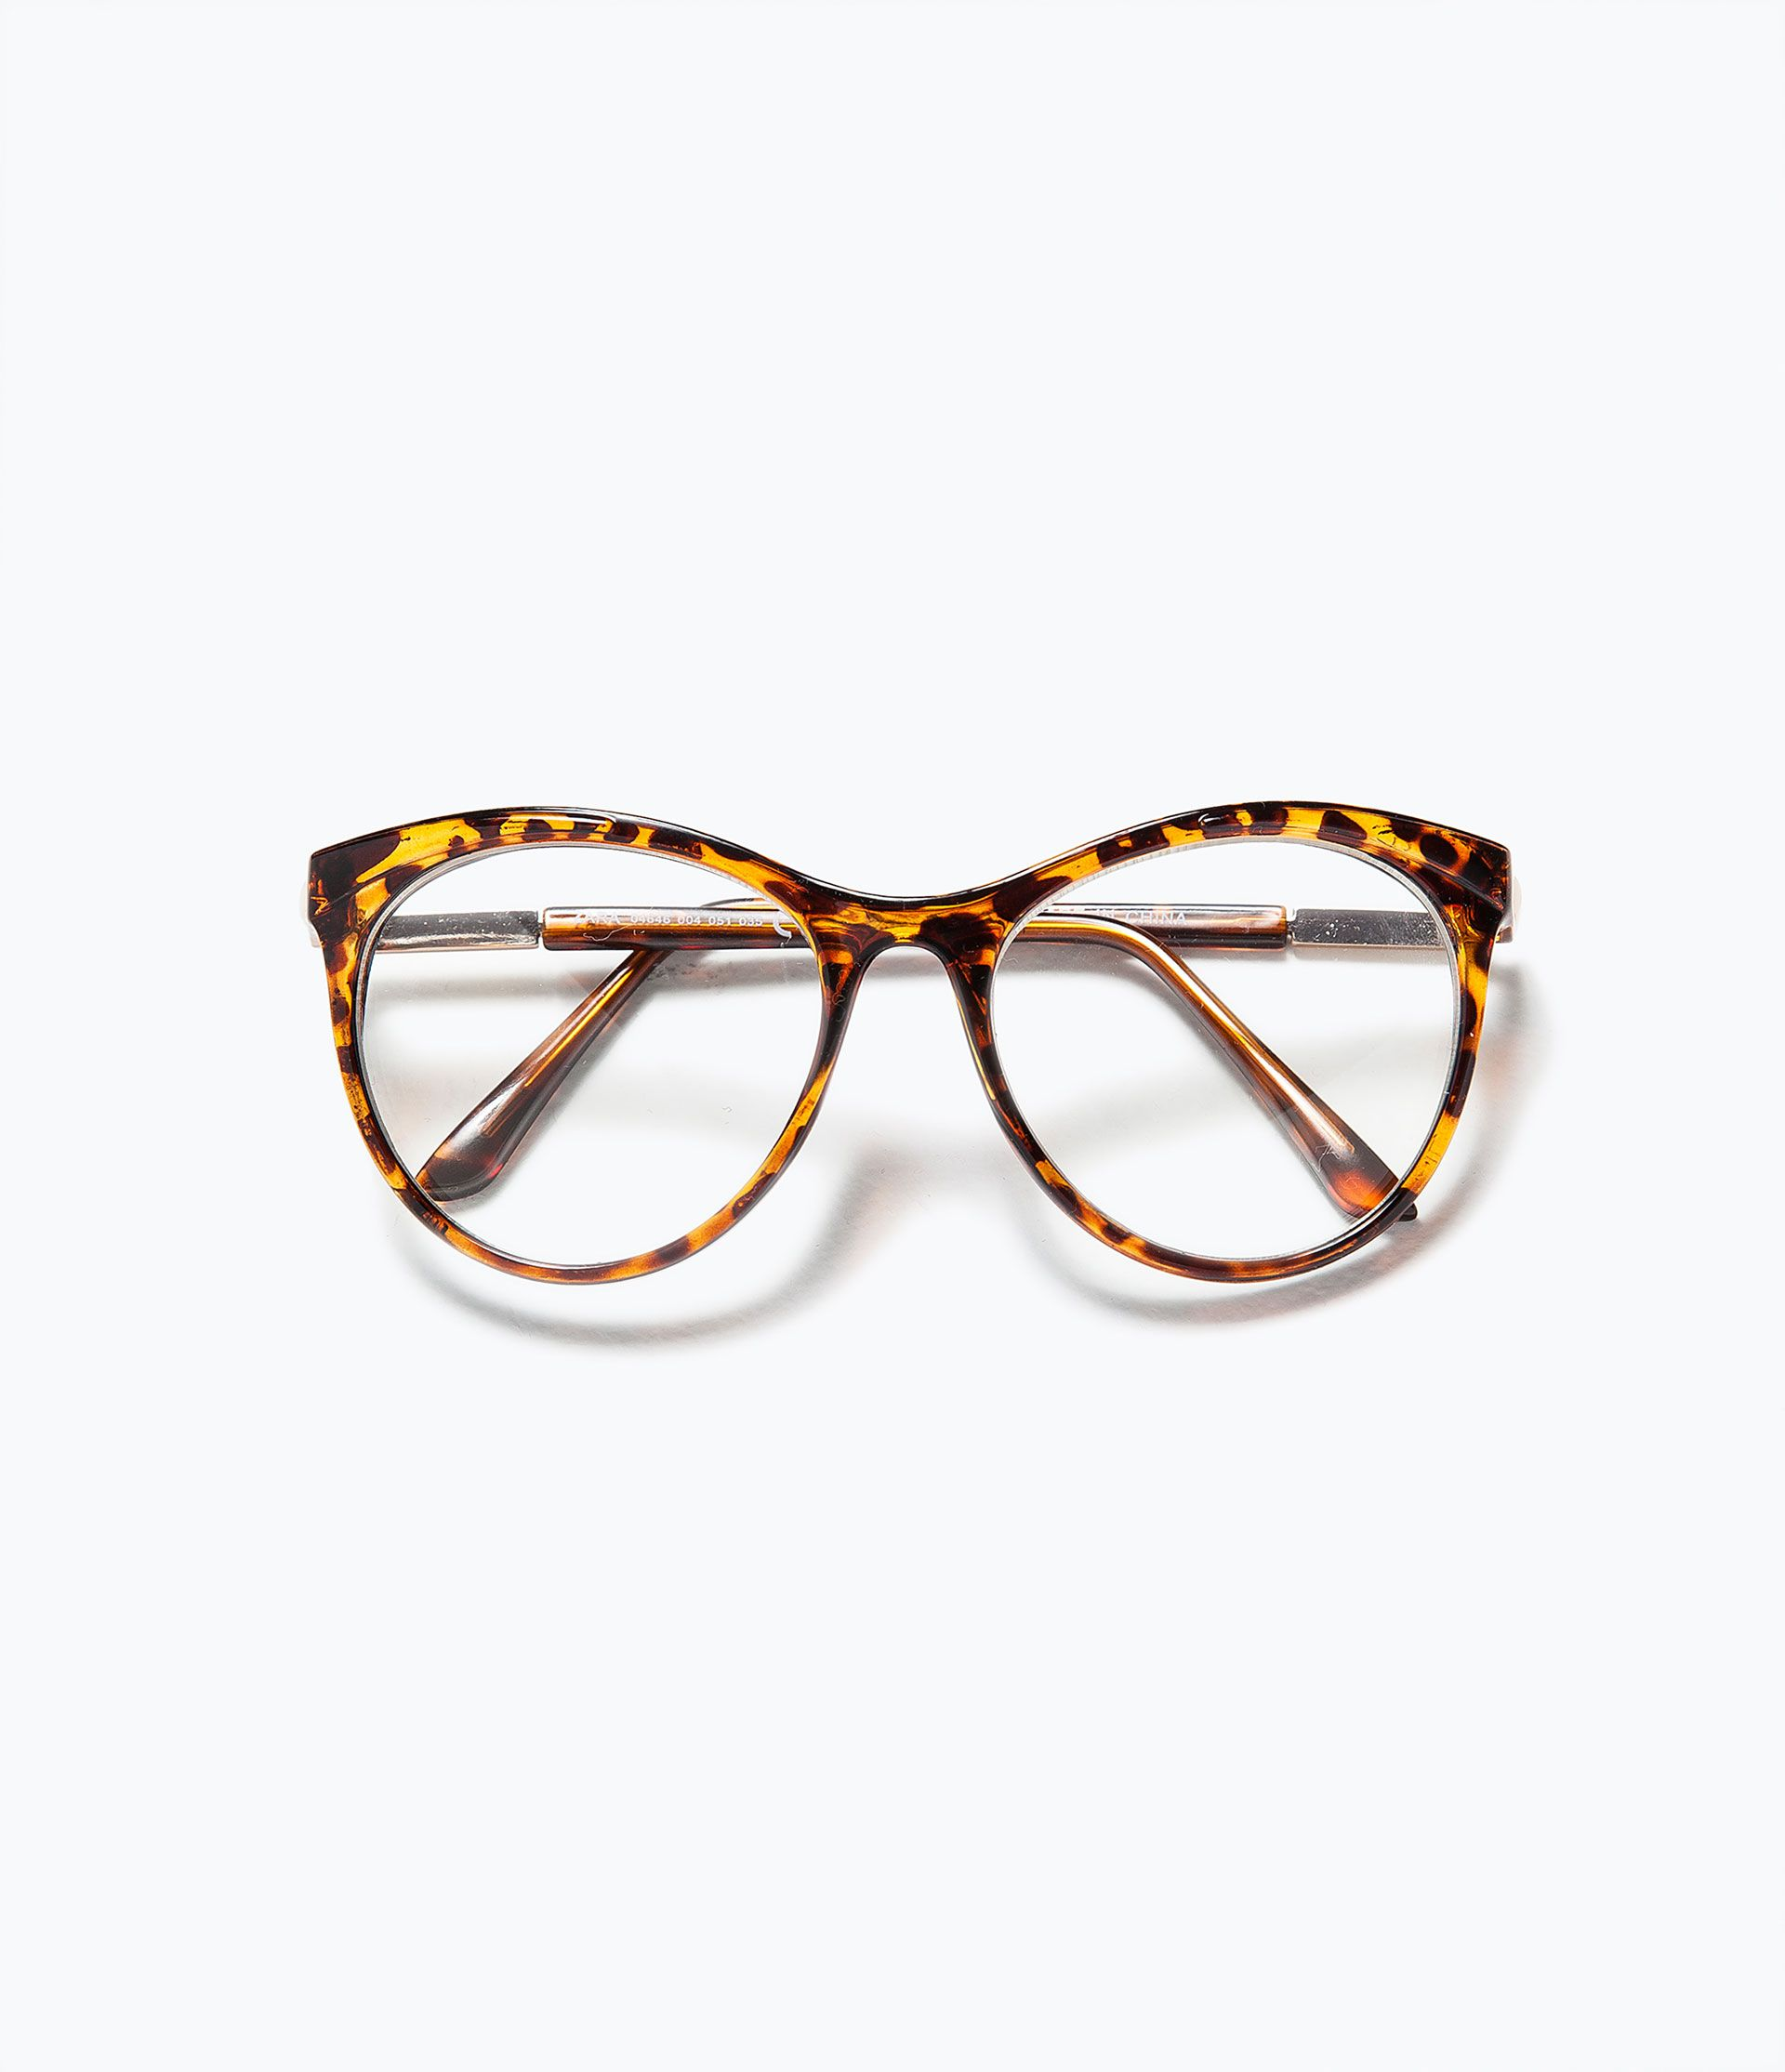 1d7f1a508579 TORTOISESHELL EFFECT GLASSES - Accessories - Accessories - WOMAN | ZARA  United Kingdom